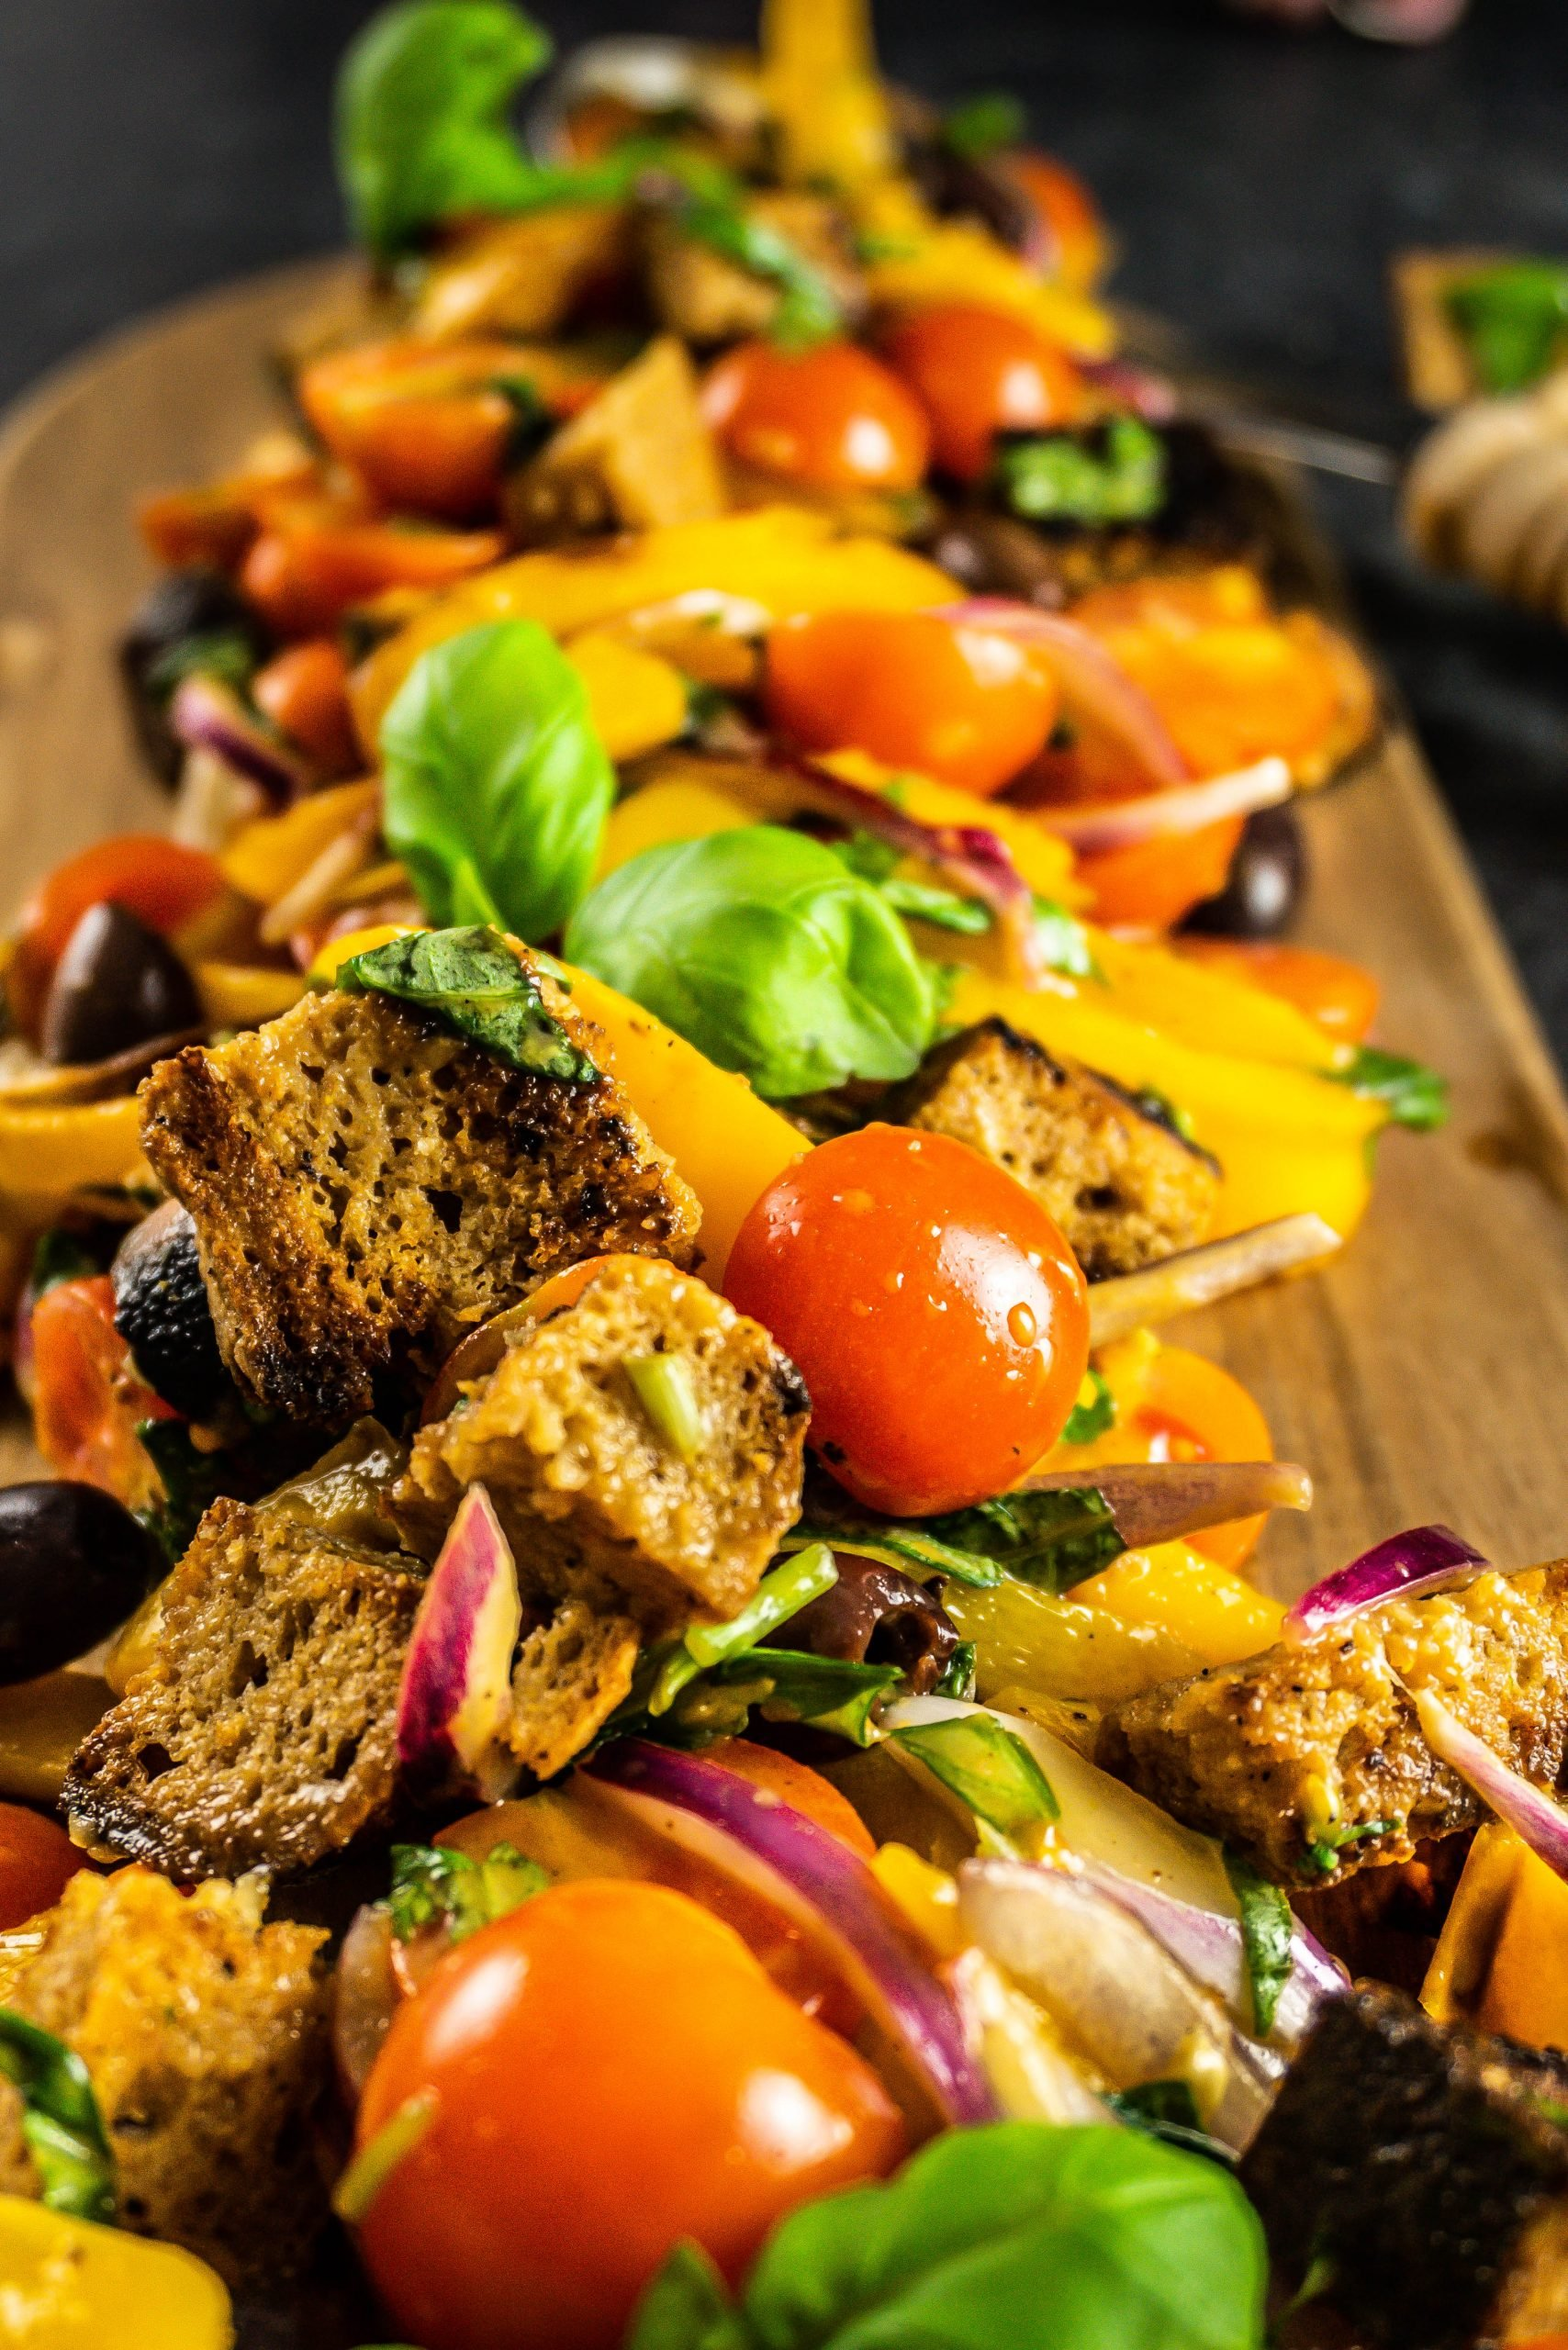 Tuscan-Style Bread and Tomato Salad (Panzanella) on a wooden board photographed up close